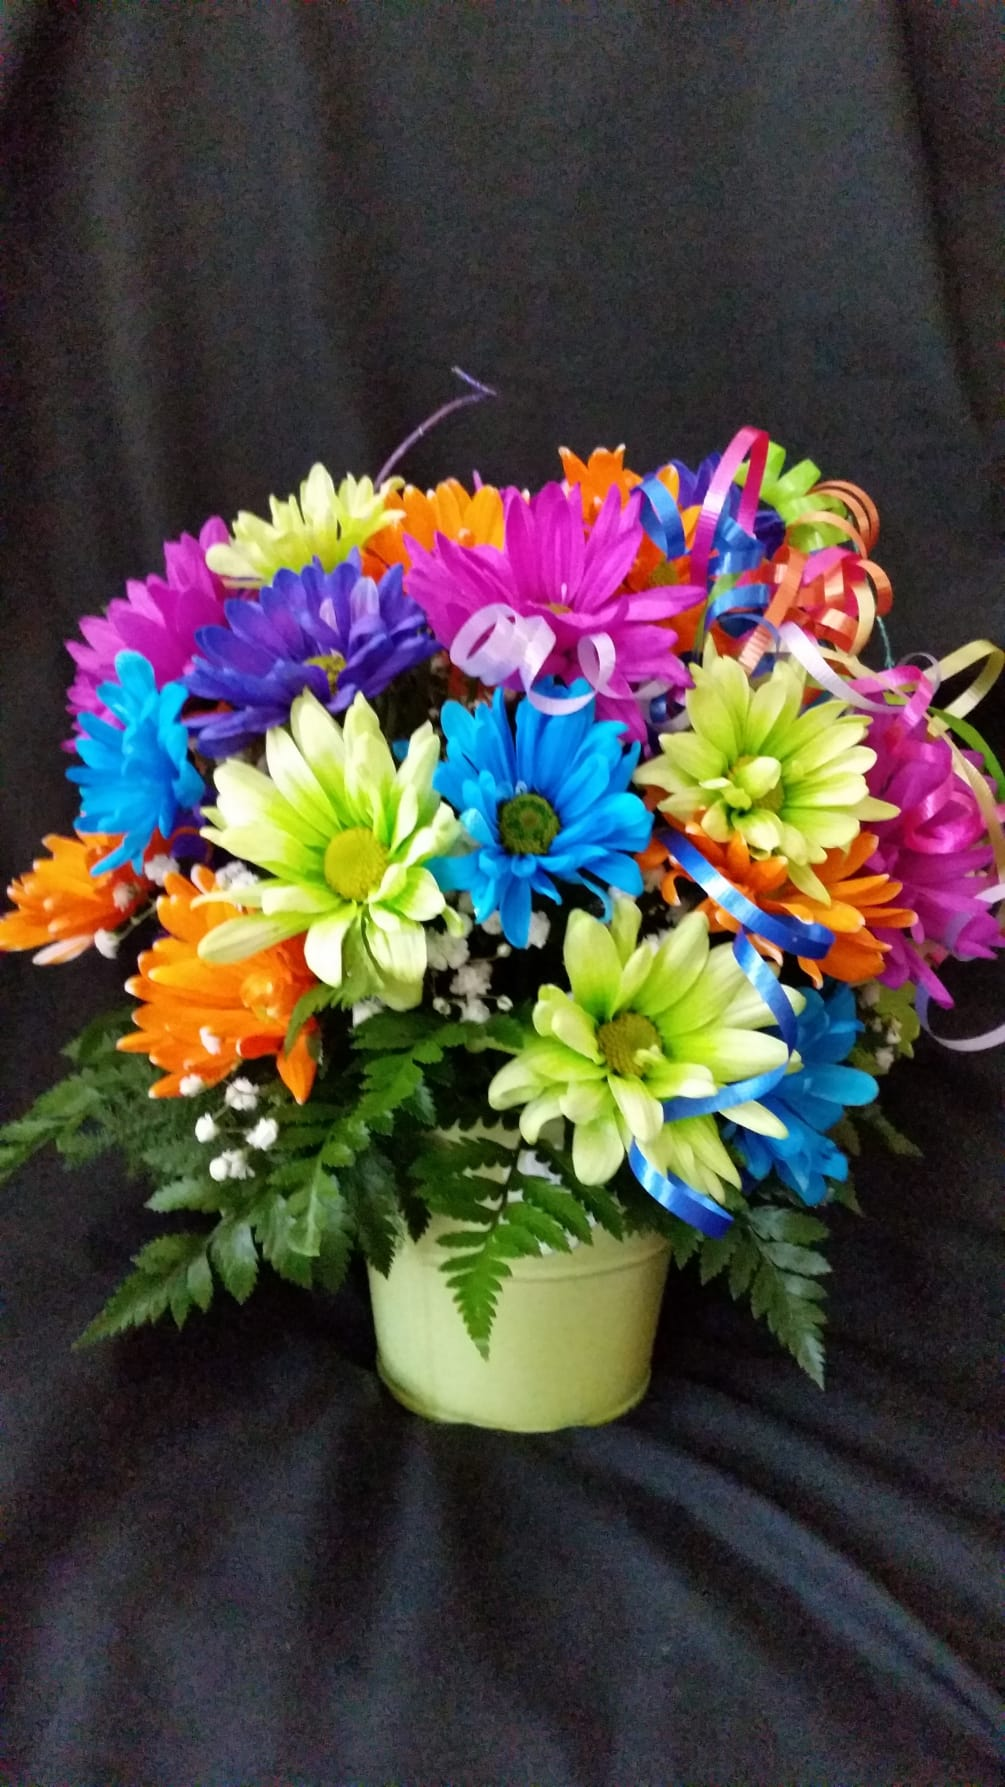 This fun flower arrangement is filled with neon colored daisies. It will